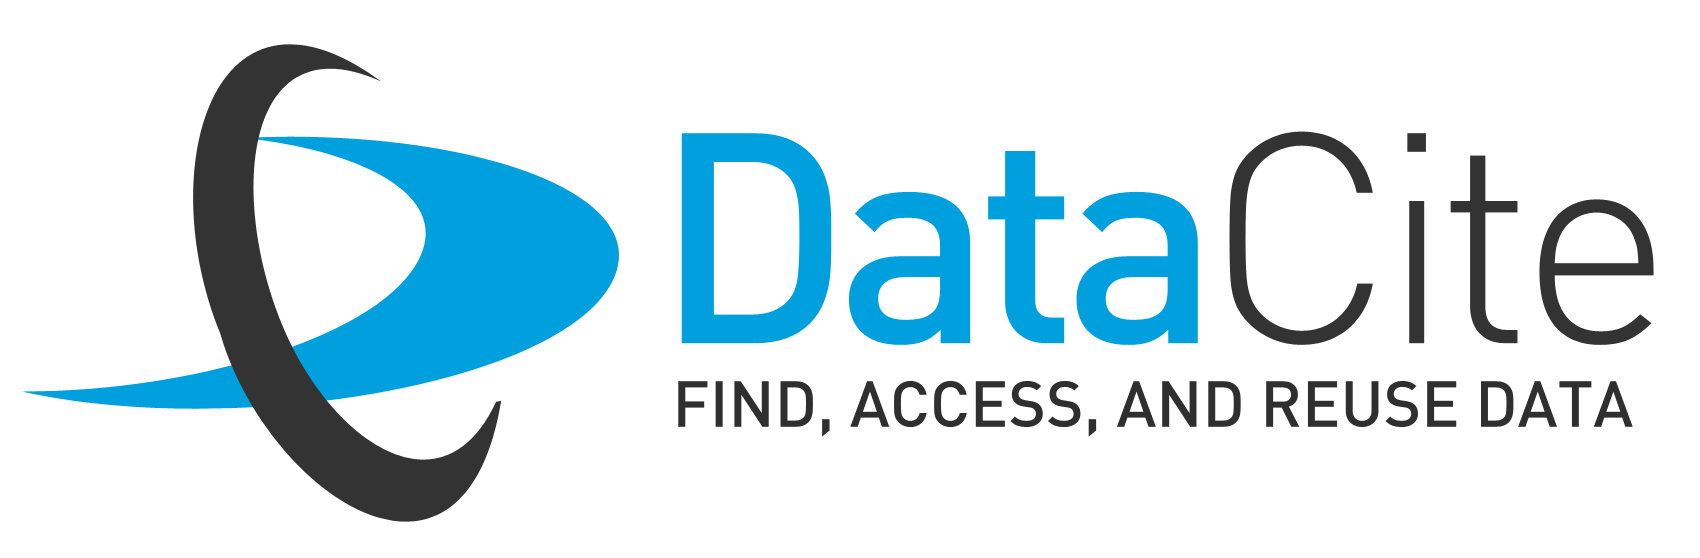 Kudos and DataCite partnership substantially advances communications, tracking and impact potential for research projects and programs